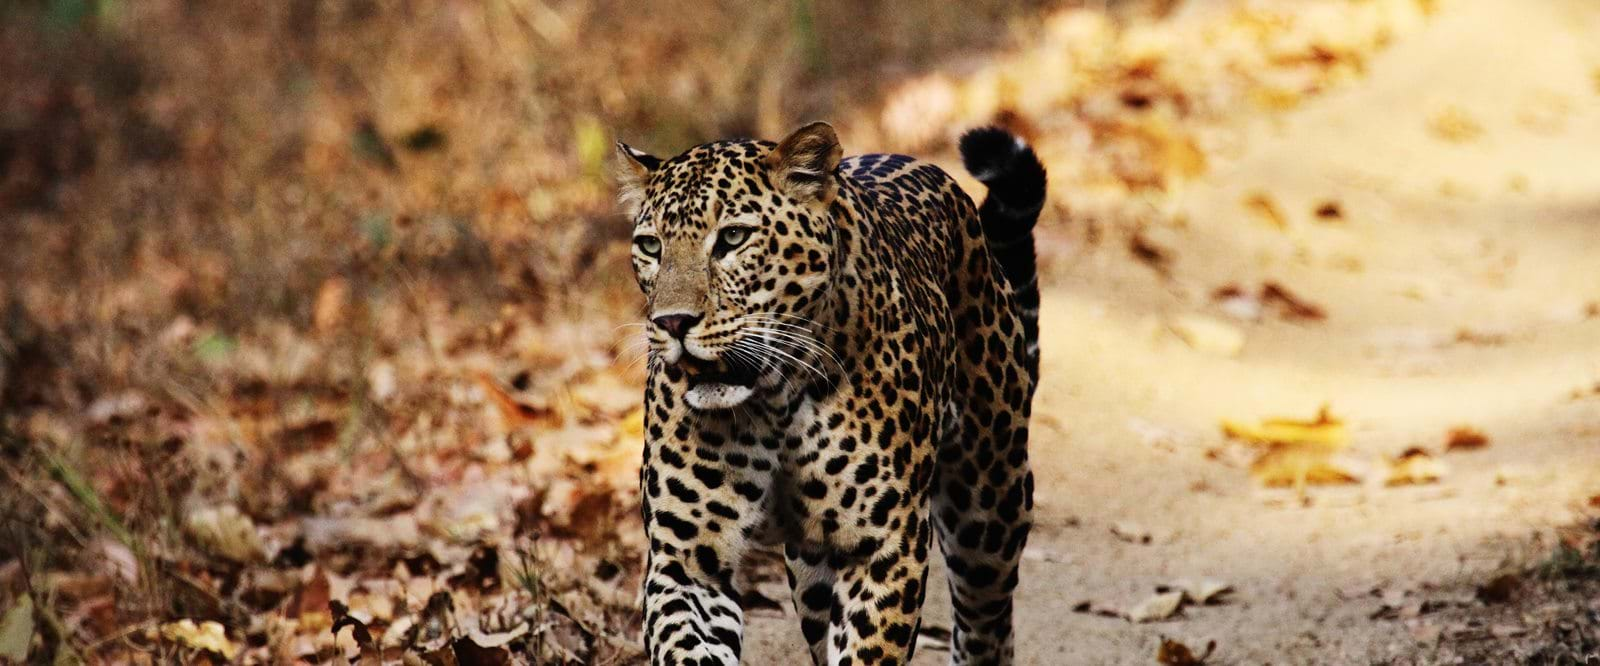 Safari, leopard, Indian leopard, india